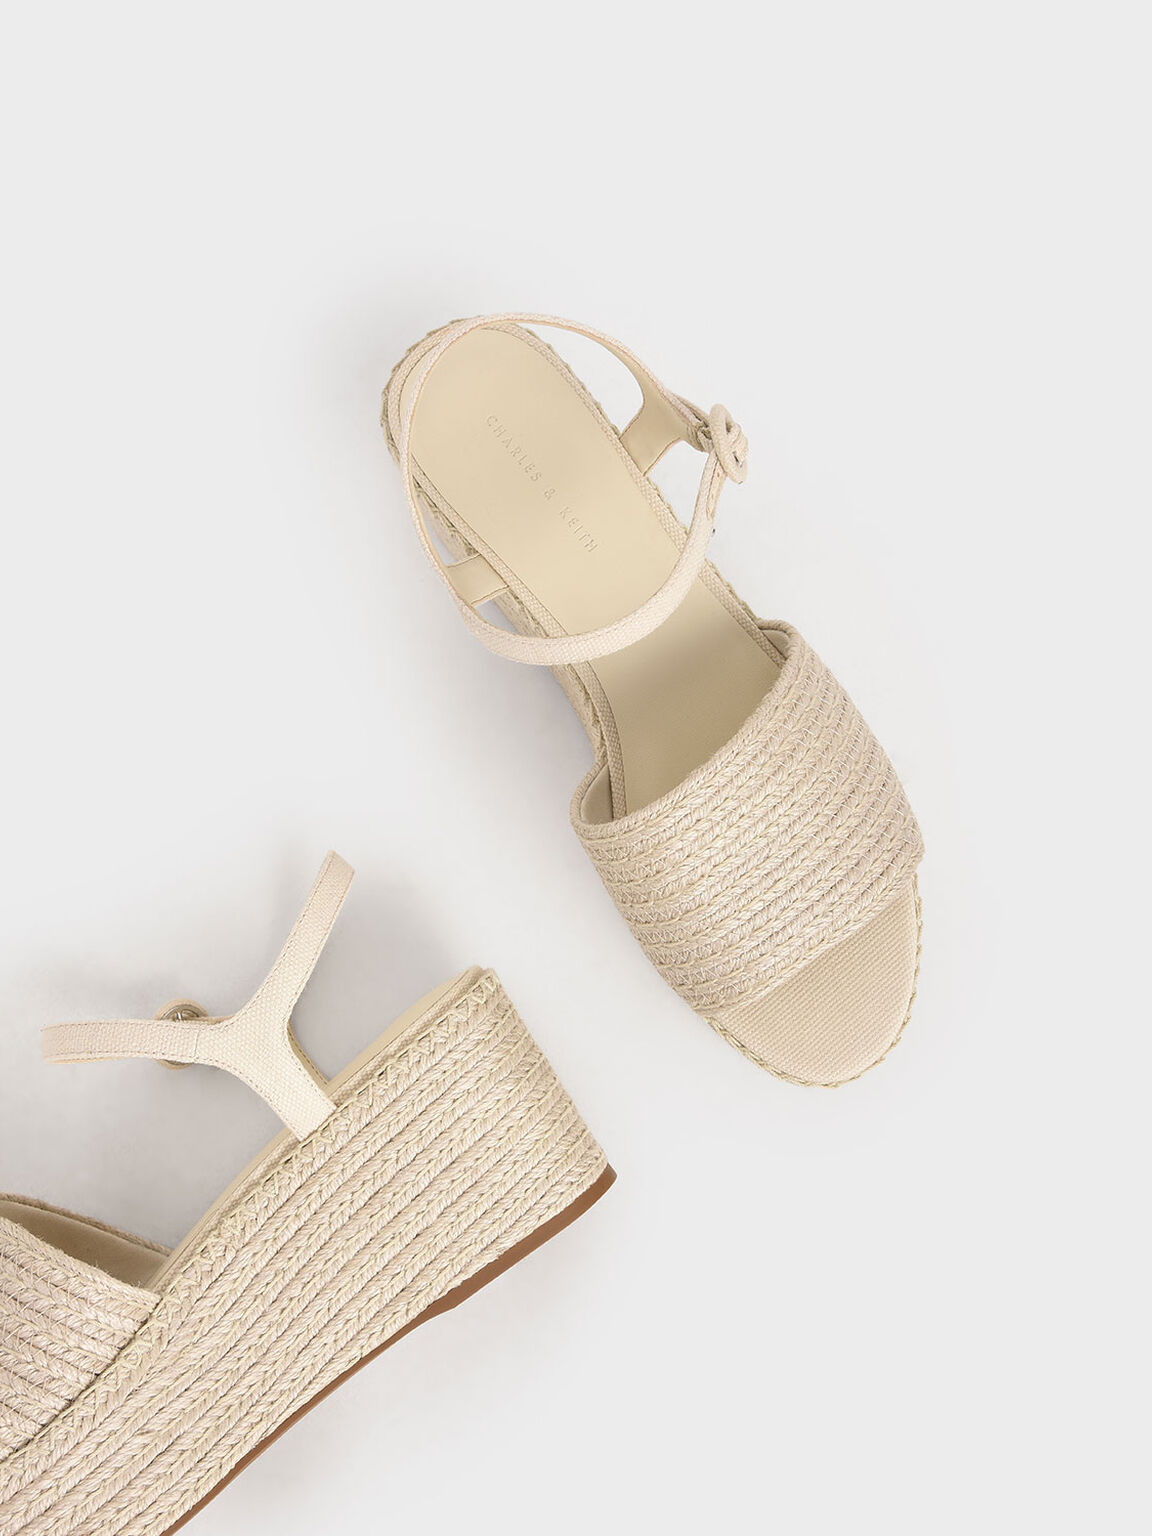 Espadrille Platform Sandals, Cream, hi-res